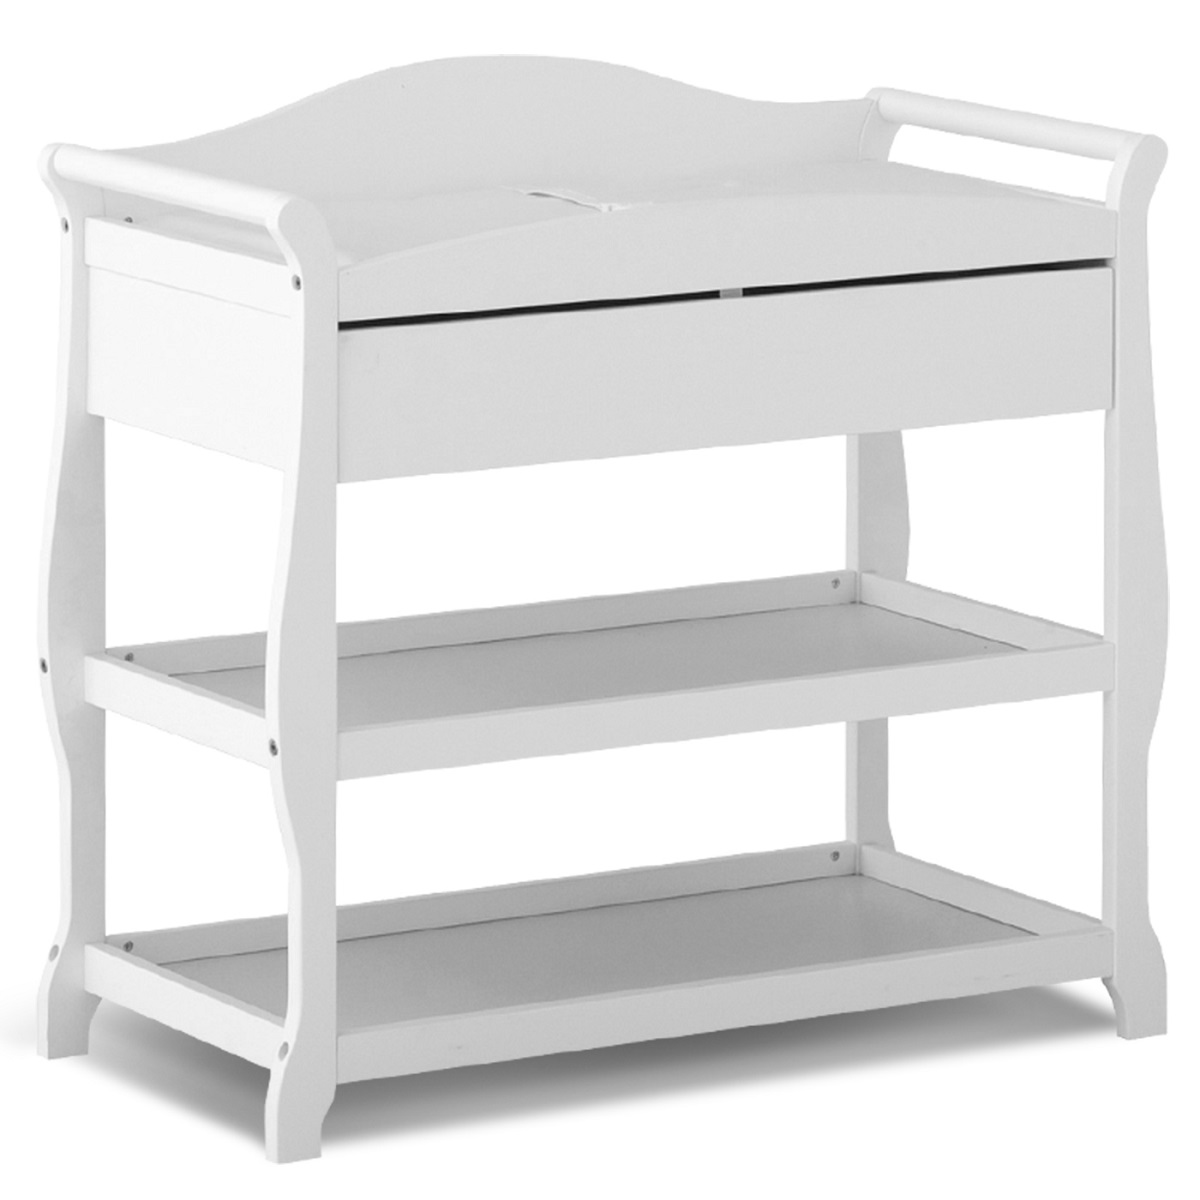 Storkcraft 2 Piece Nursery Set   Princess 4 In 1 Fixed Side Convertible  Crib And Aspen Changing Table In White FREE SHIPPING